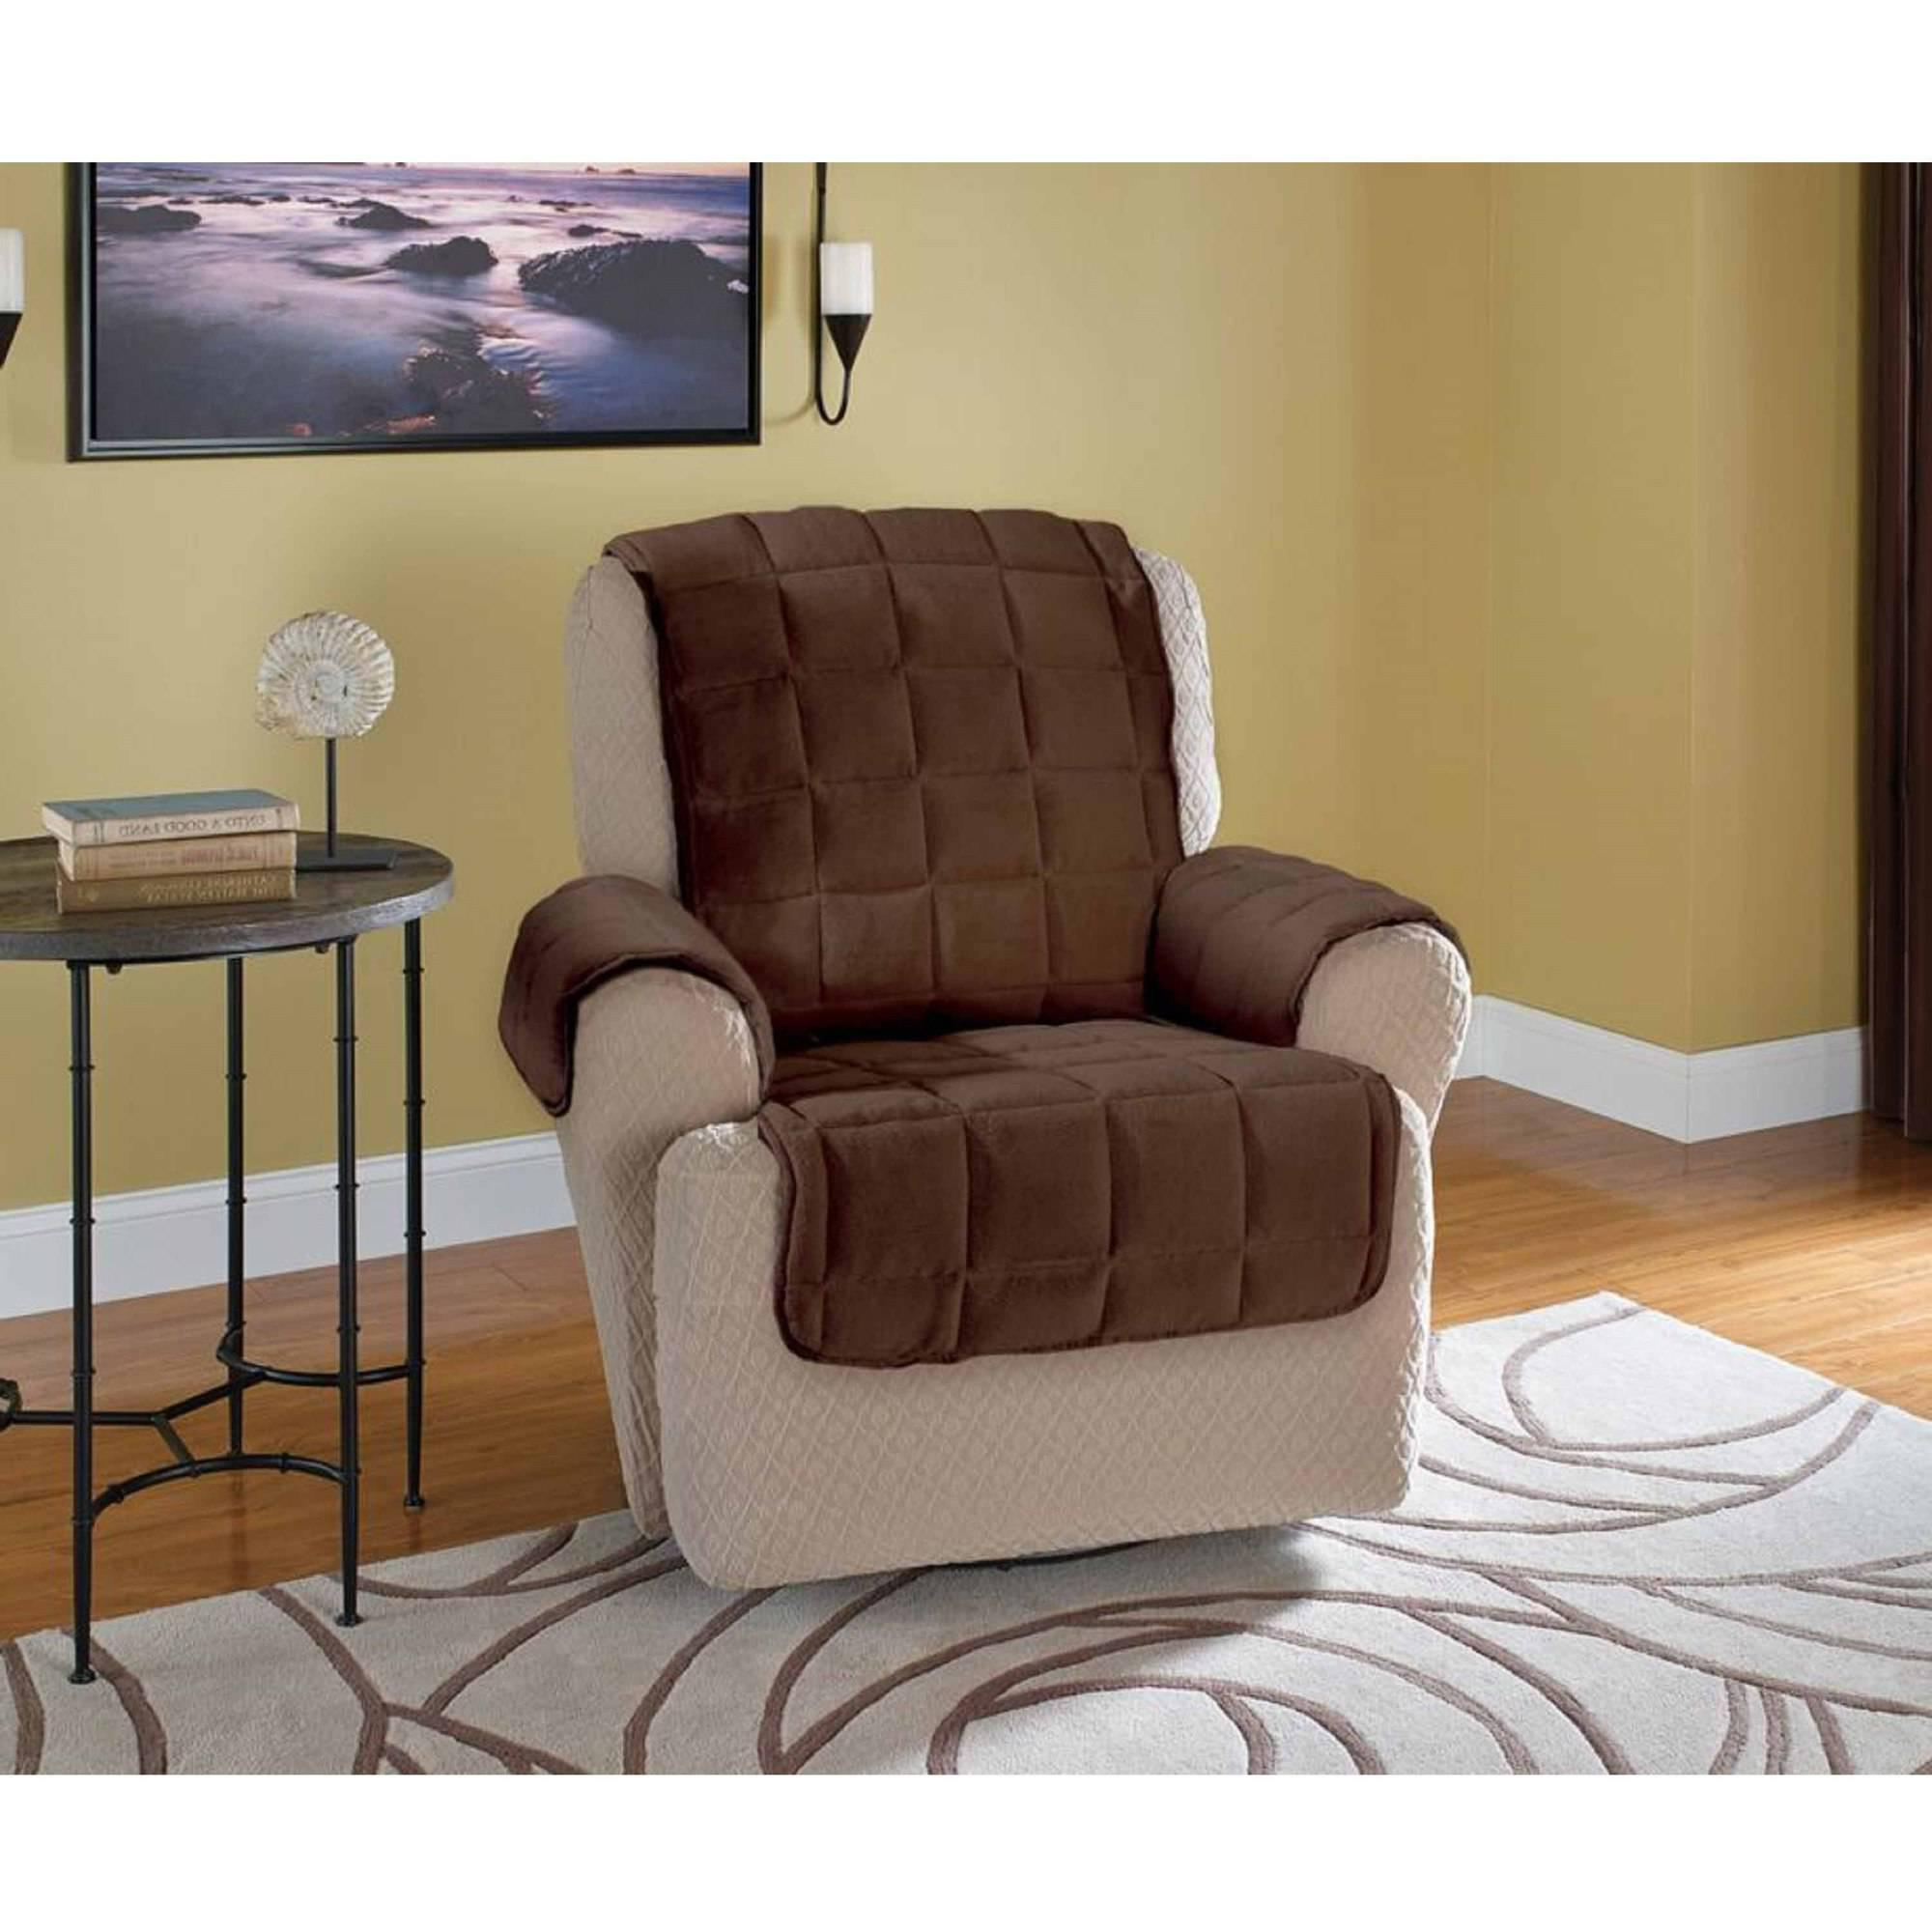 Sofas: Glamour Sofa With Recliner Covers Walmart Design Ideas For Well Known Sofa And Chair Covers (View 16 of 20)